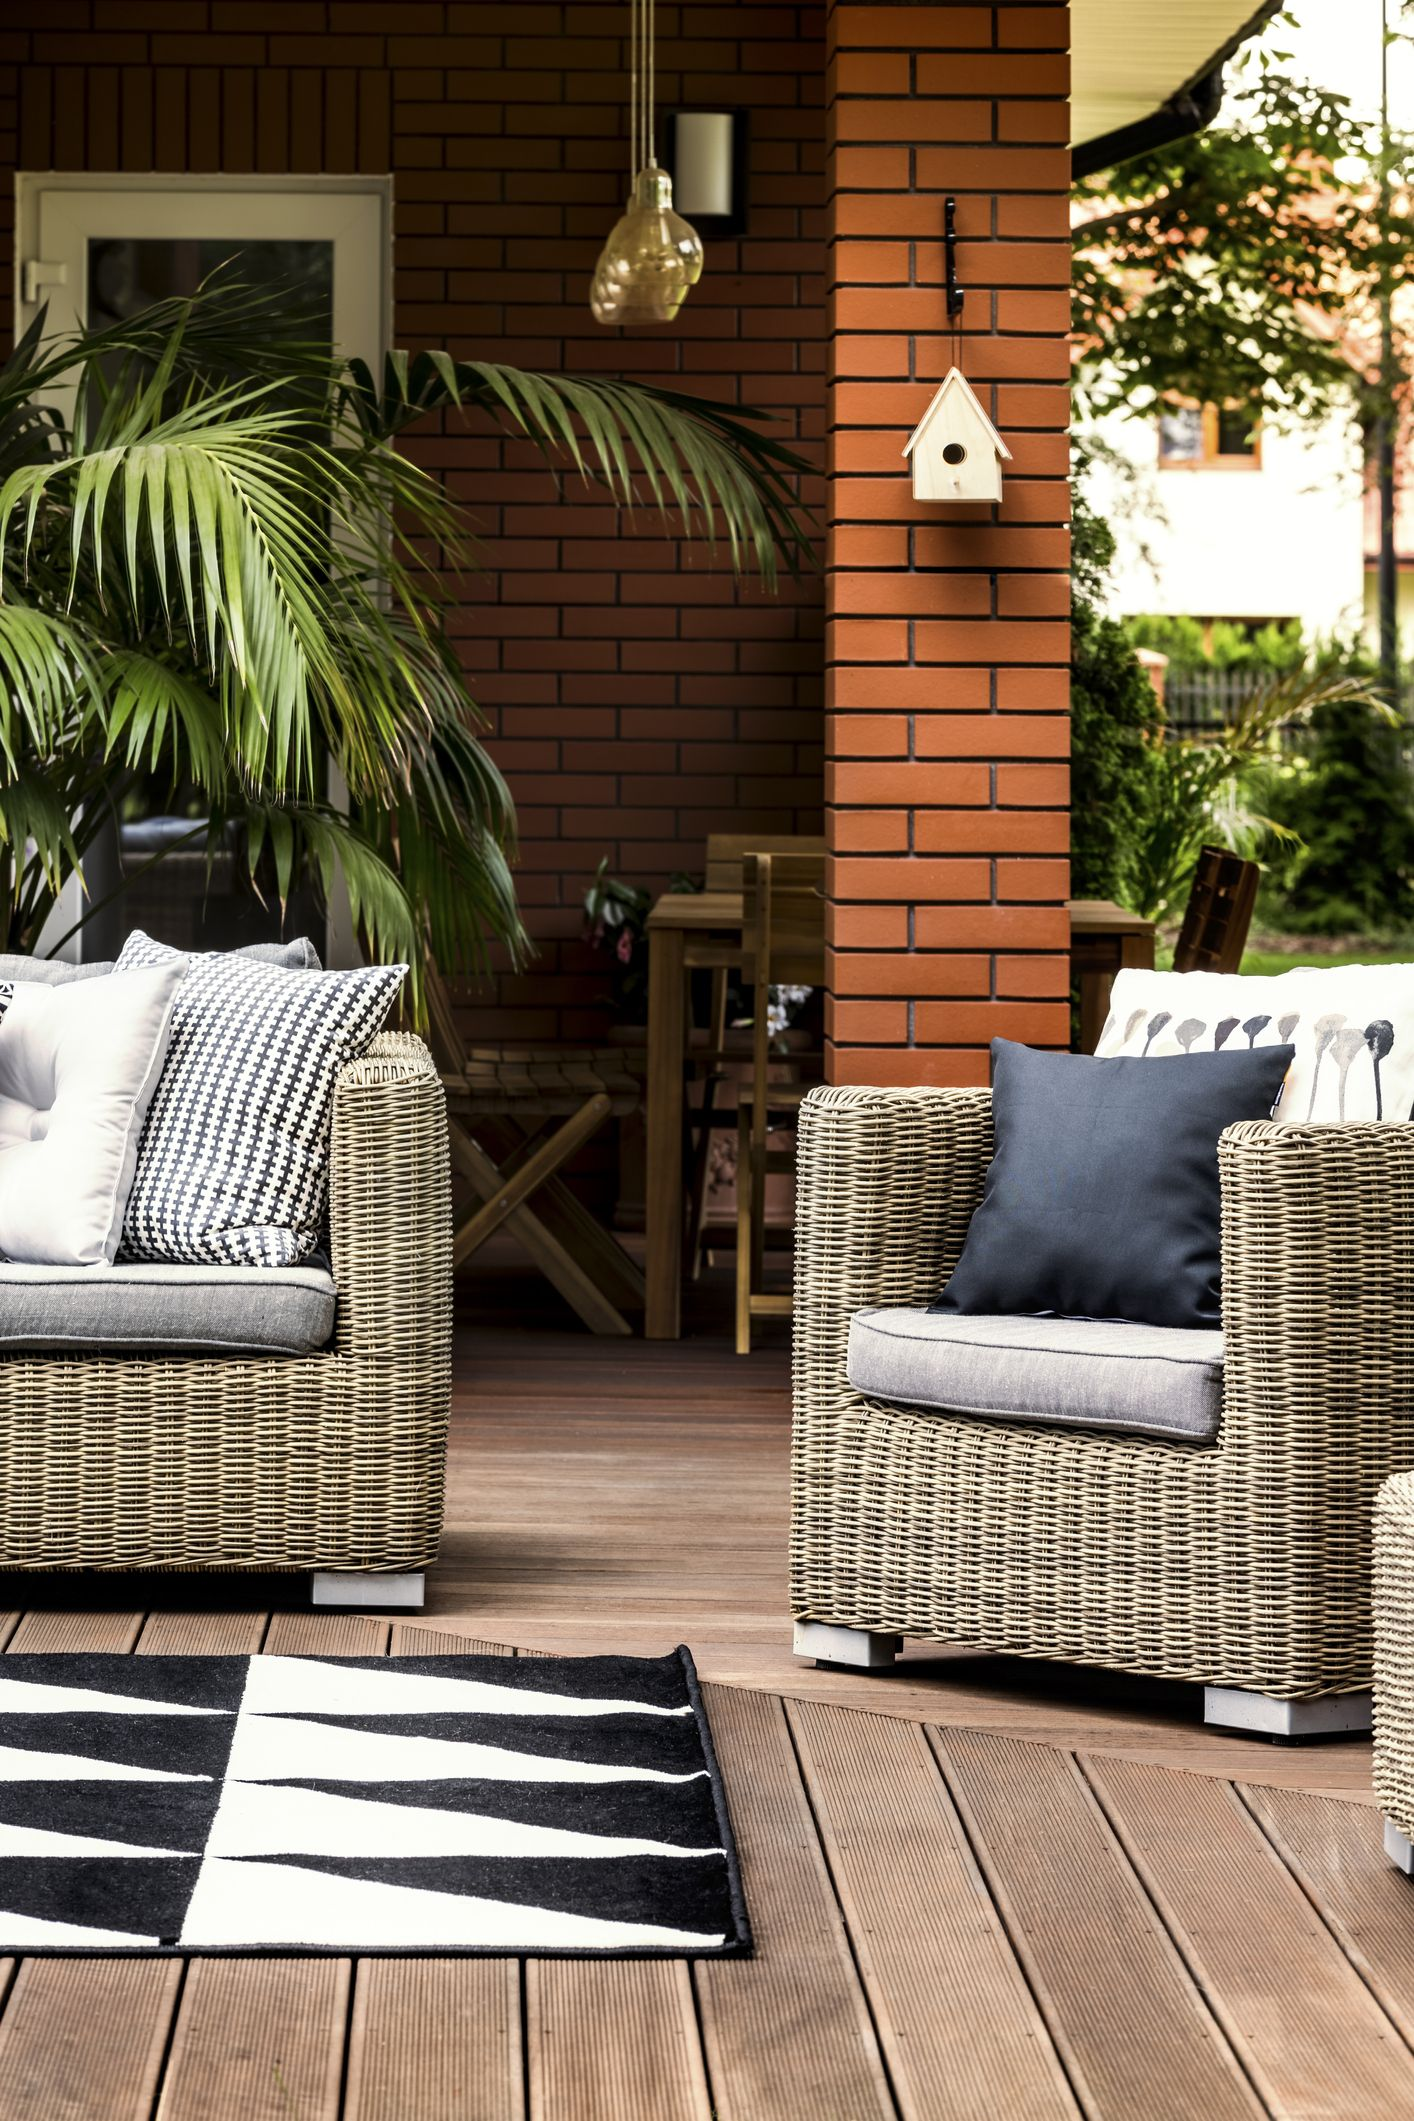 the best long lasting outdoor furniture your patio needs this summer